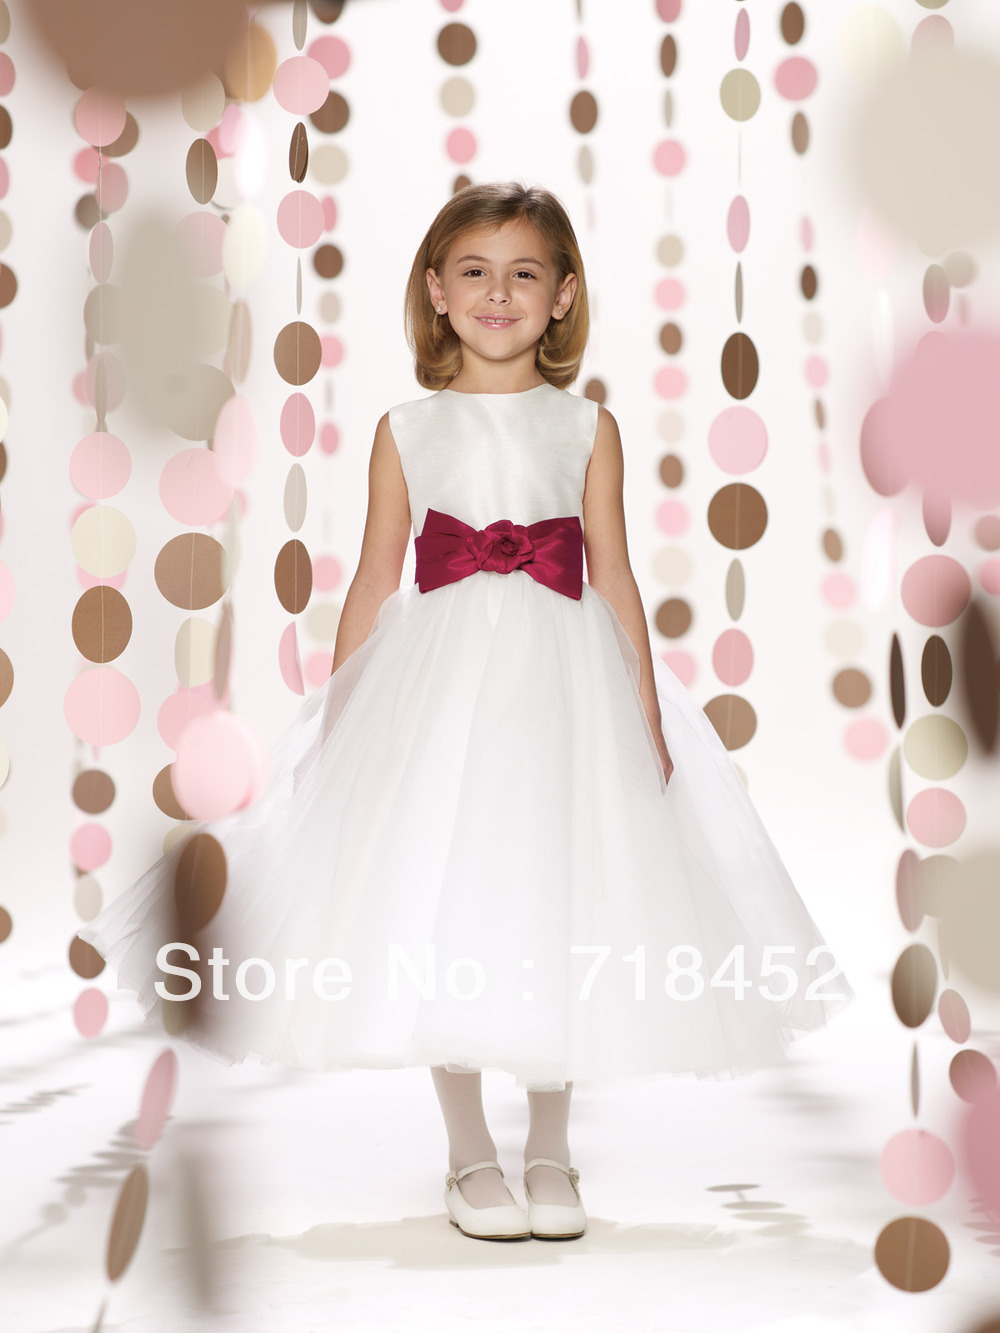 Cheap flower girl dress sashes find flower girl dress sashes deals get quotations 2013 new fashion white organza flower girl dress party dresses sashes with bow free shipping izmirmasajfo Images